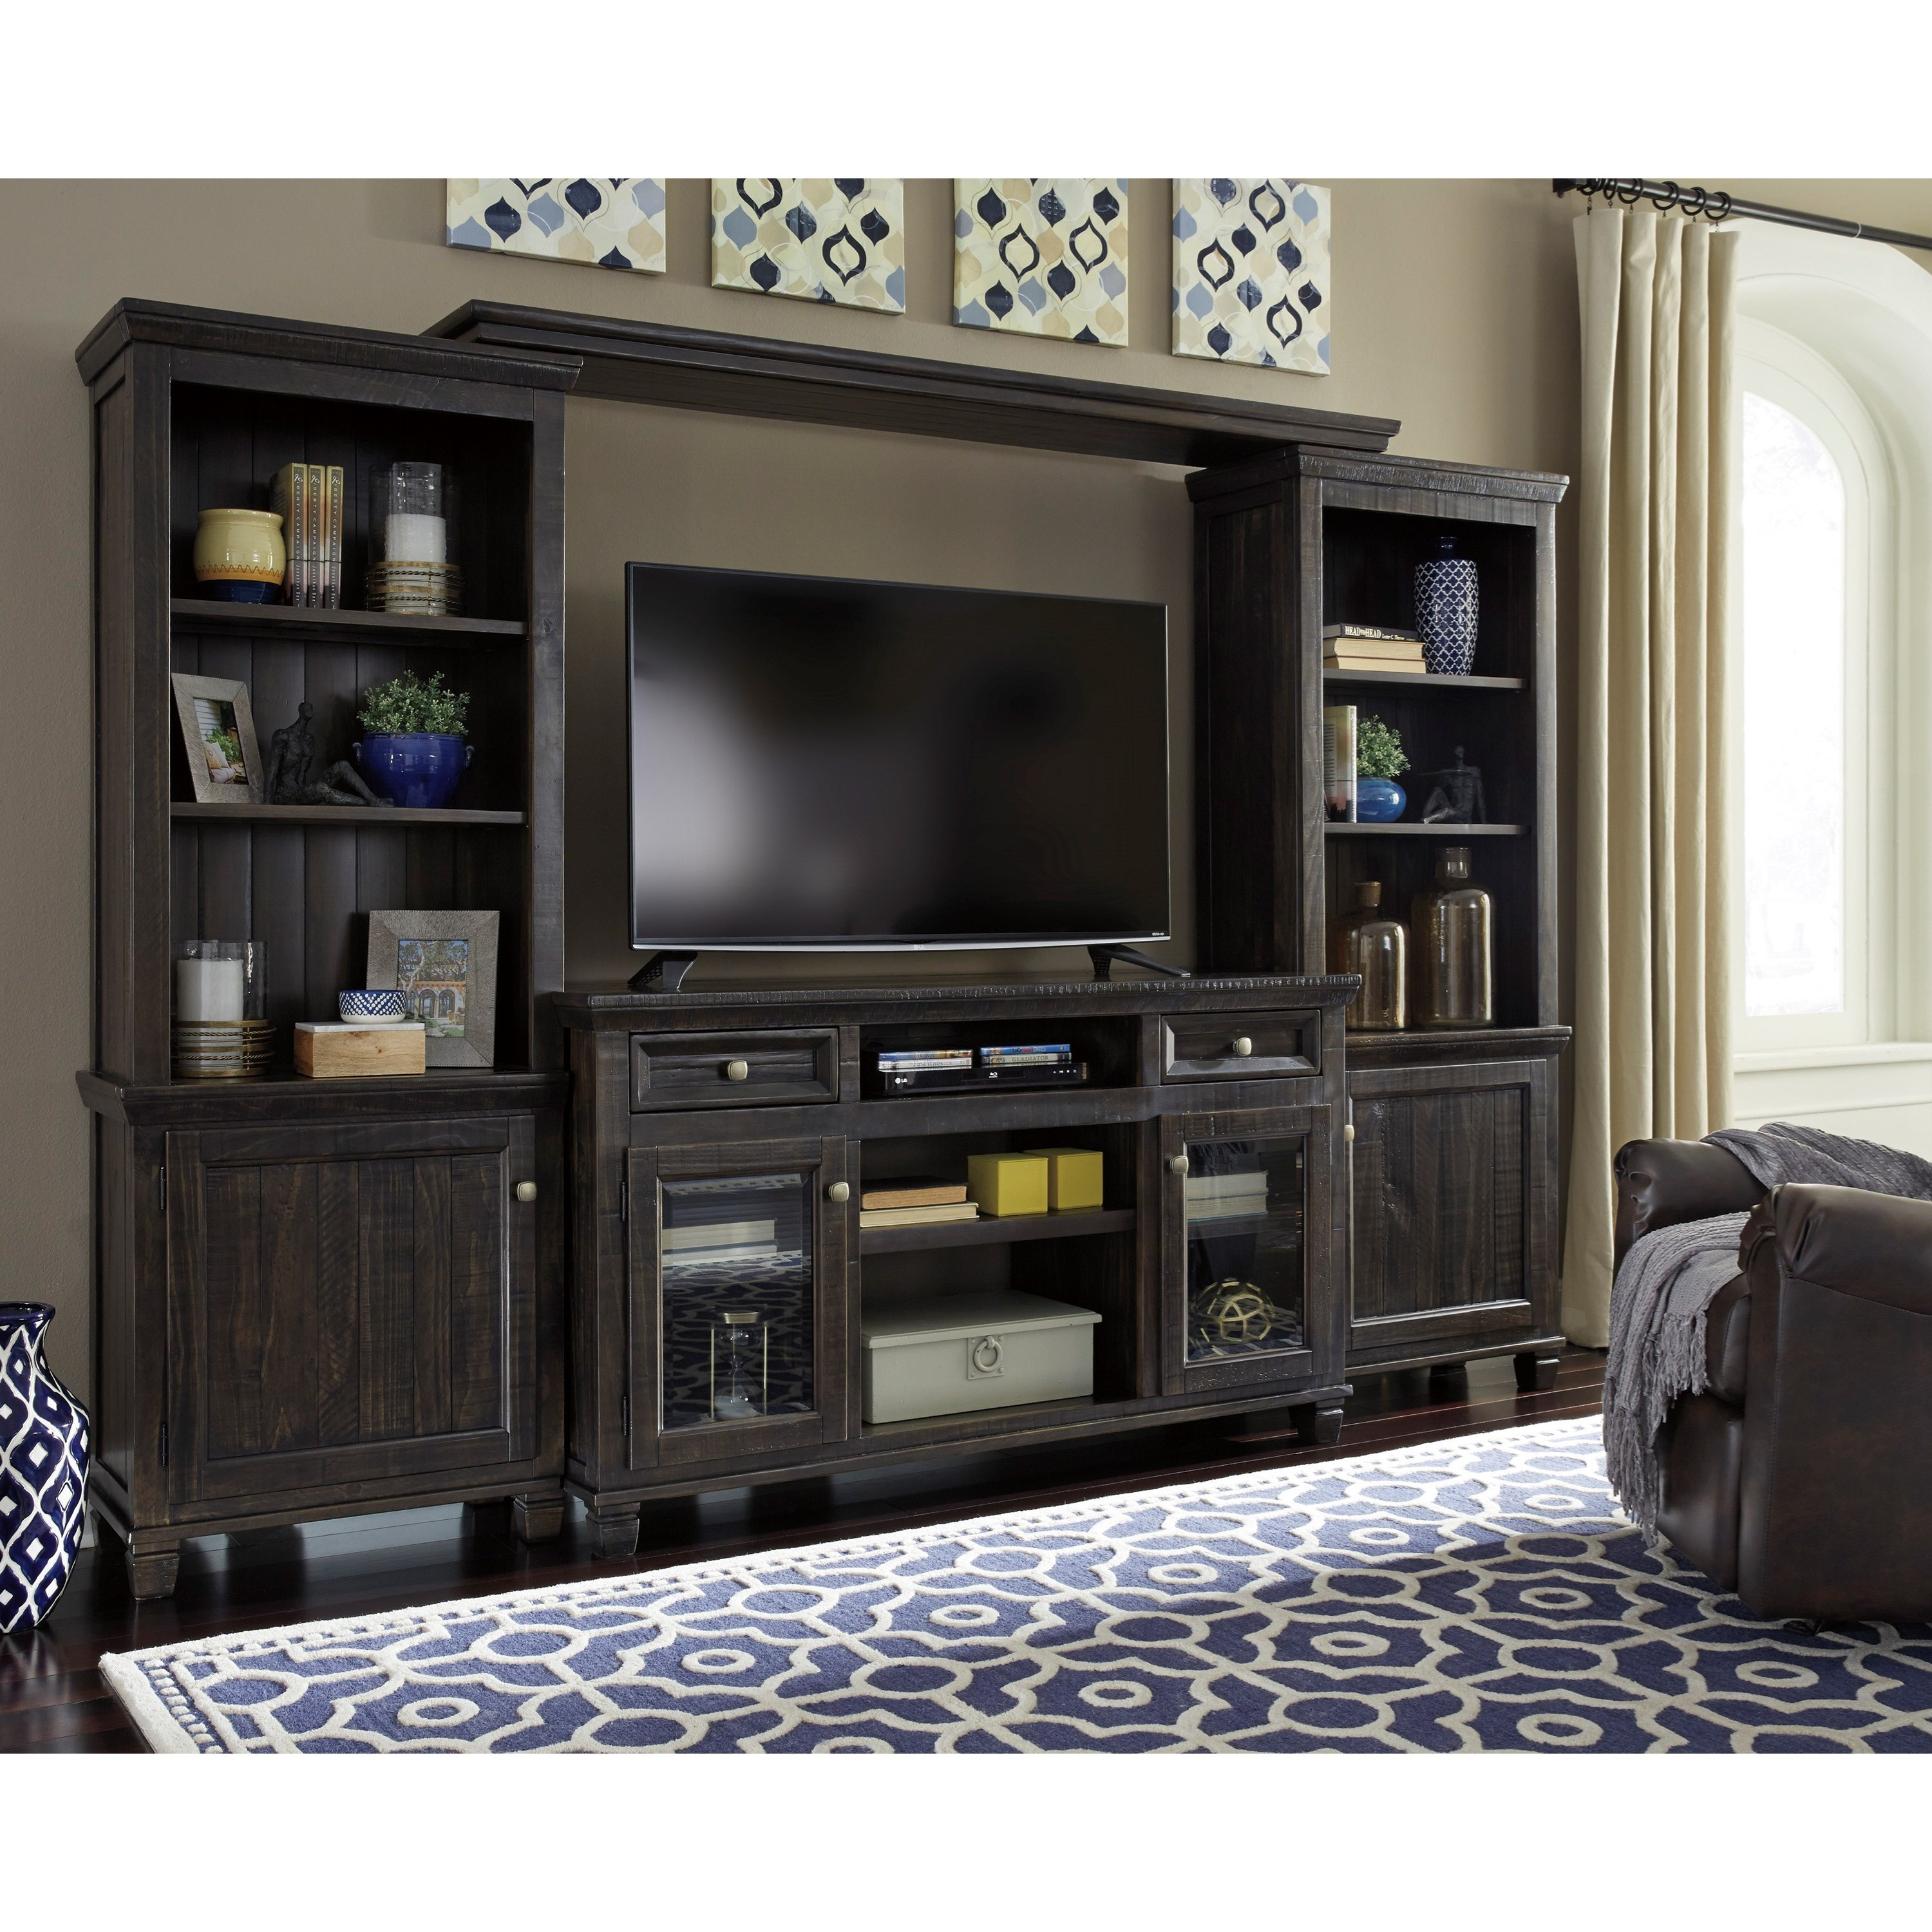 Benchcraft Townser Solid Wood Pine Entertainment Center